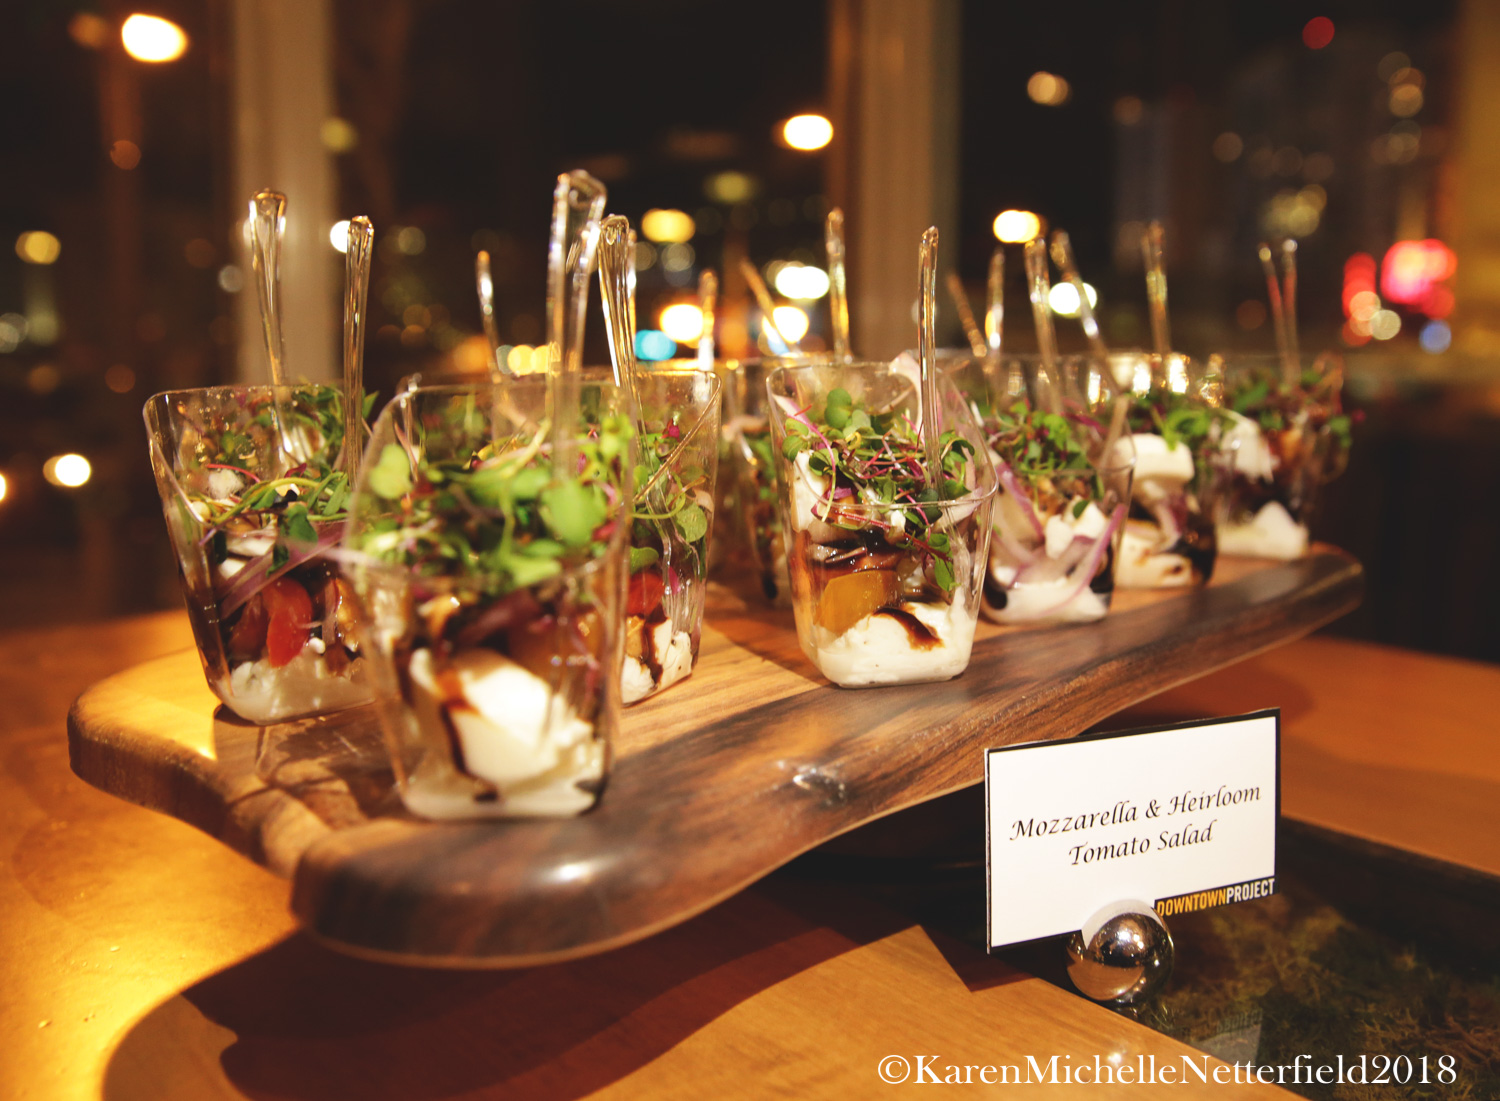 Catering_Food_Foodie_Product_Photography1©KarenMichelleNetterfield2017.jpg